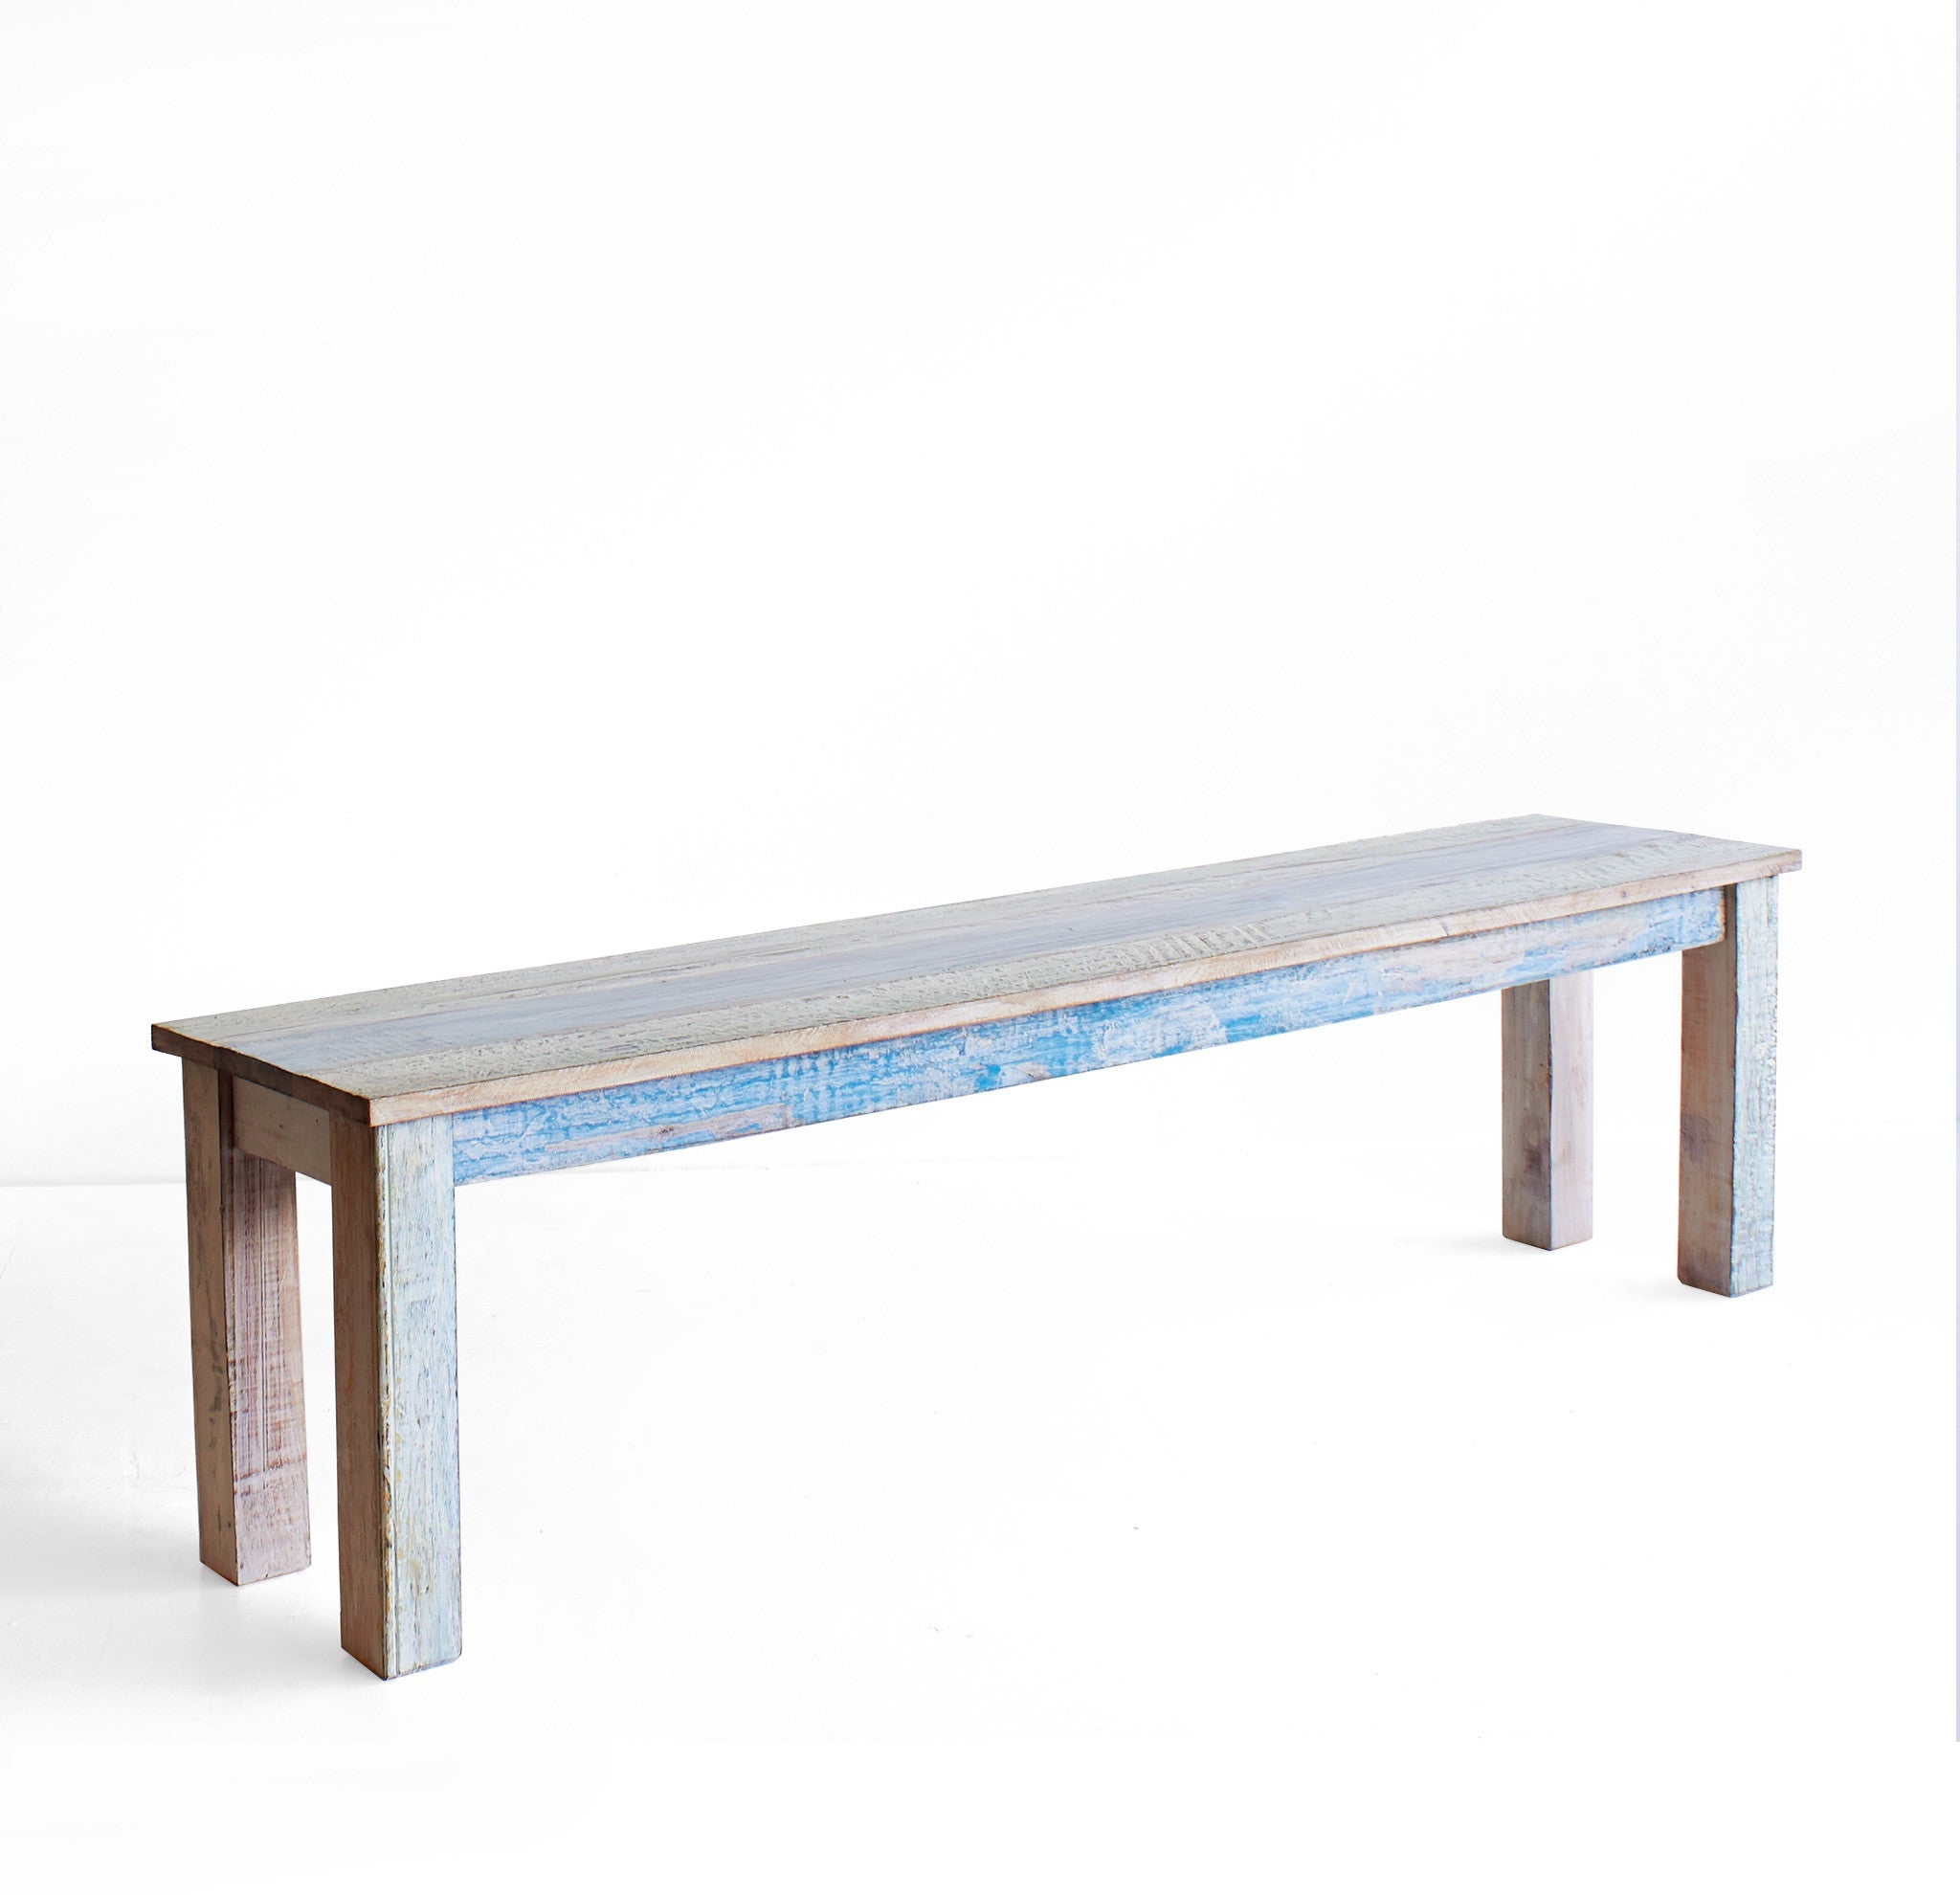 Wooden Bench | Ledge-Nomad India-Originals Furniture - 2